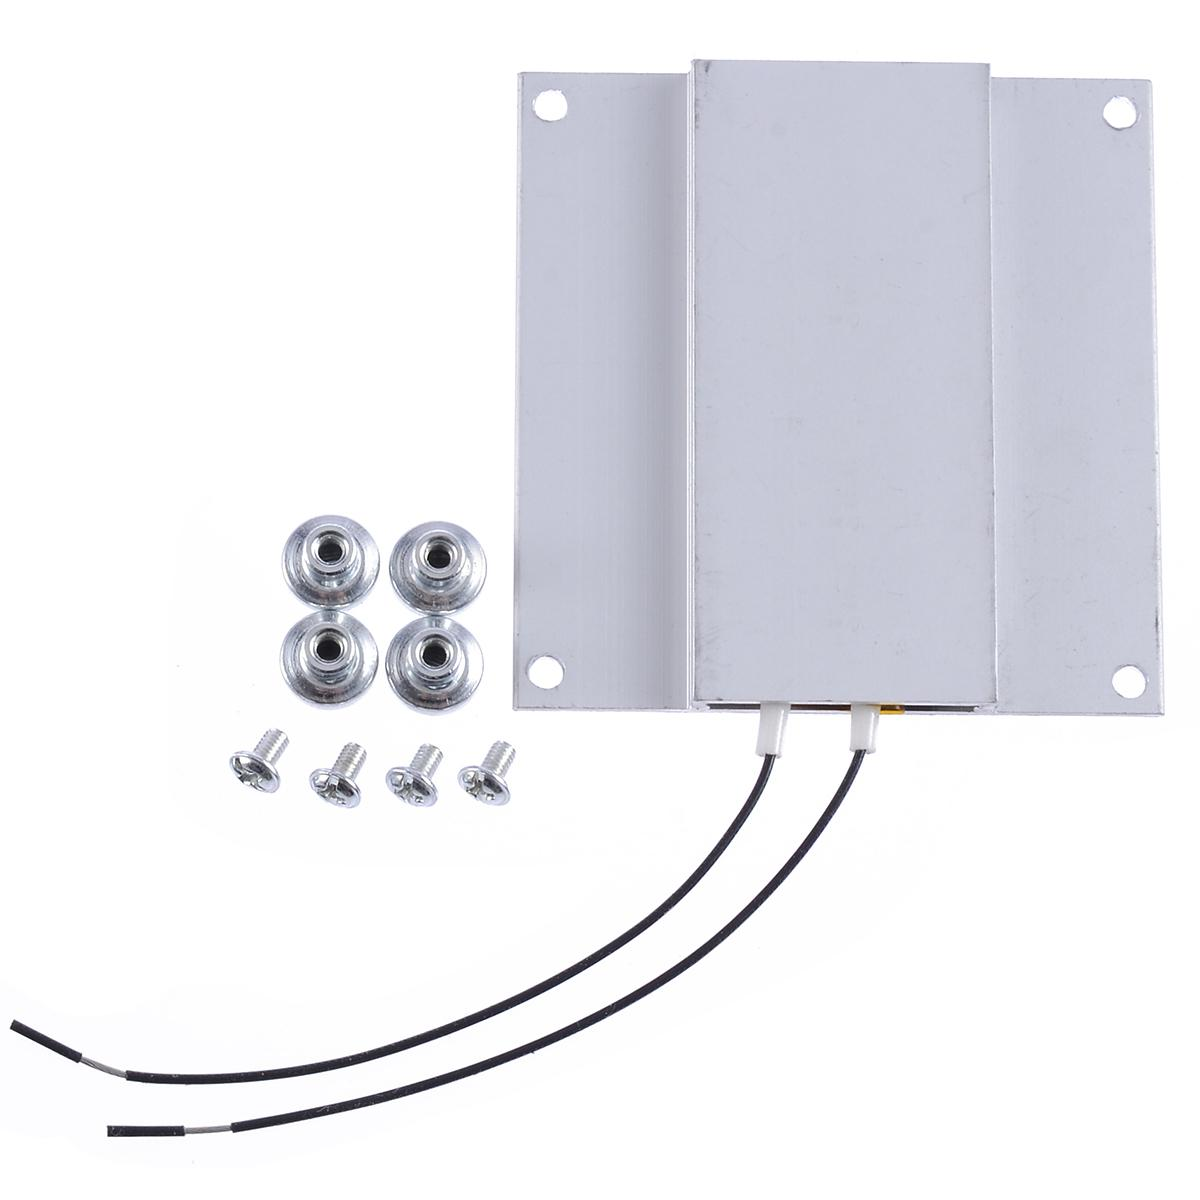 1pc 220V Heating Plate Soldering For TV Backlight Aluminum 68*70mm